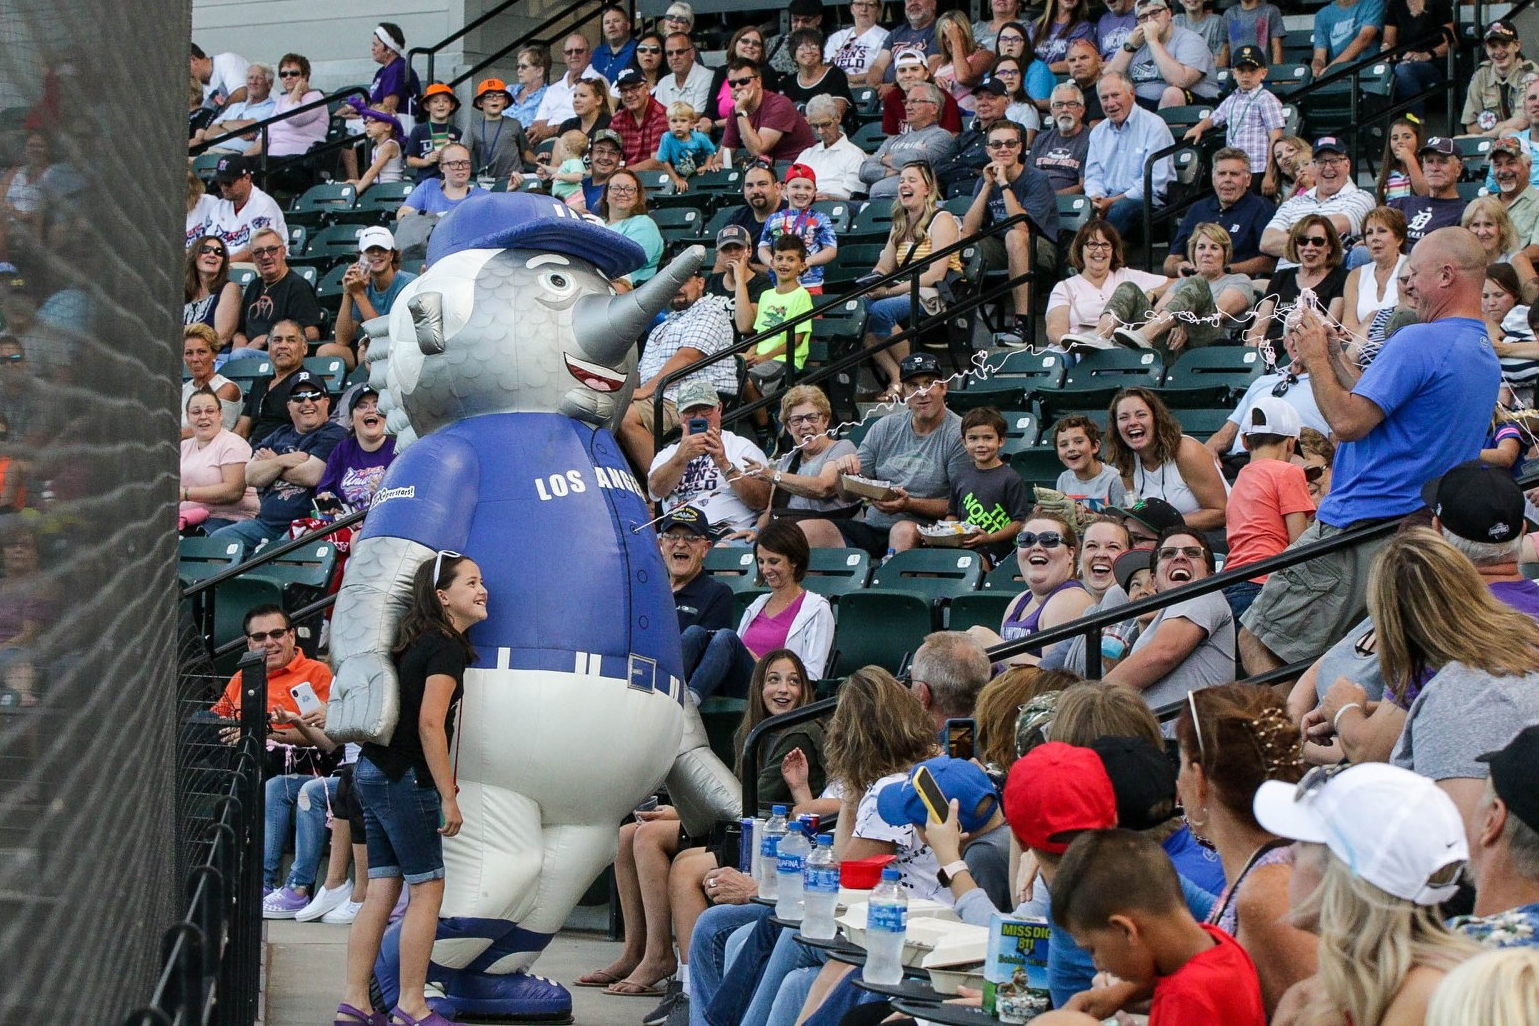 United Shore Baseball Game And THE WORLD-FAMOUS ZOOPERSTARS!